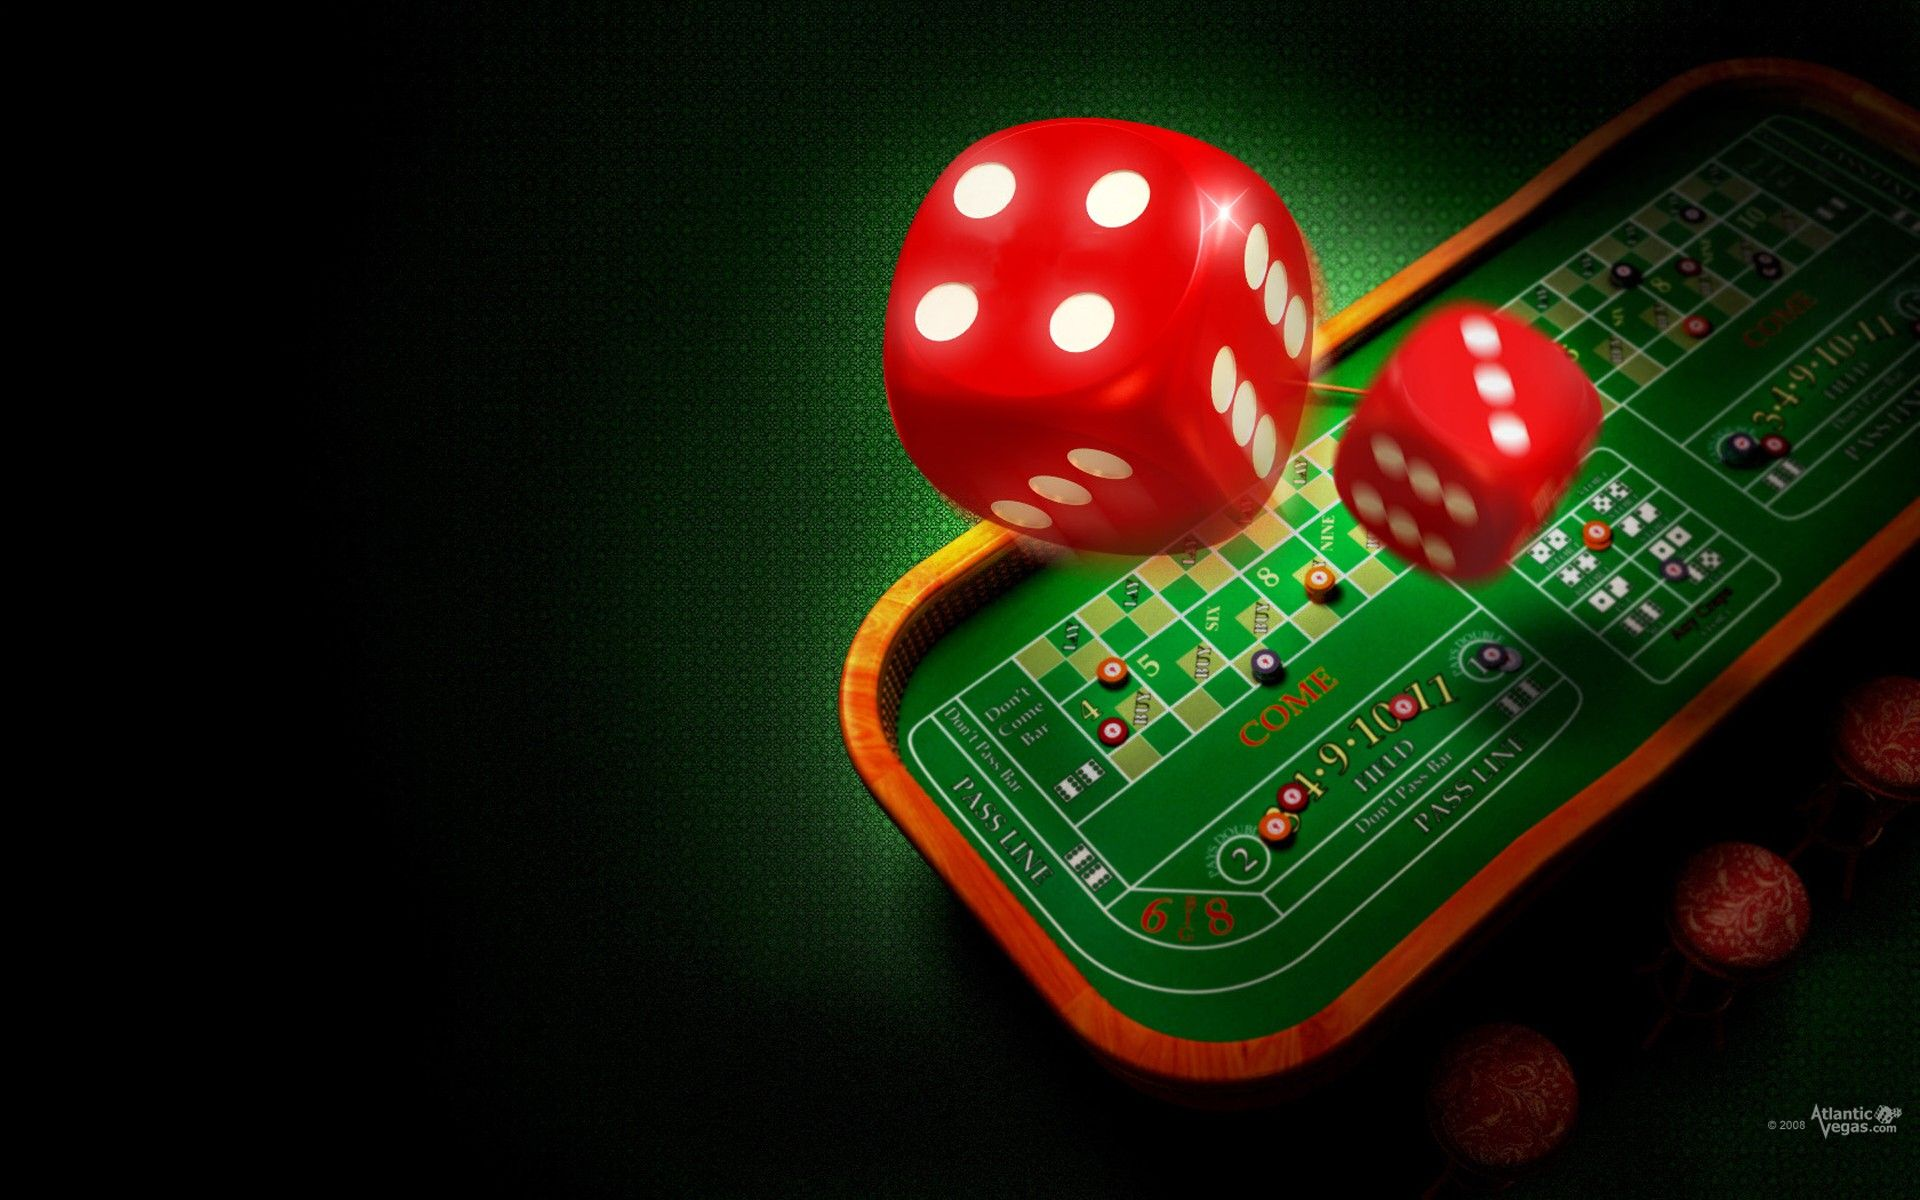 What Make Online casino w88 w88 Don't want You To Know